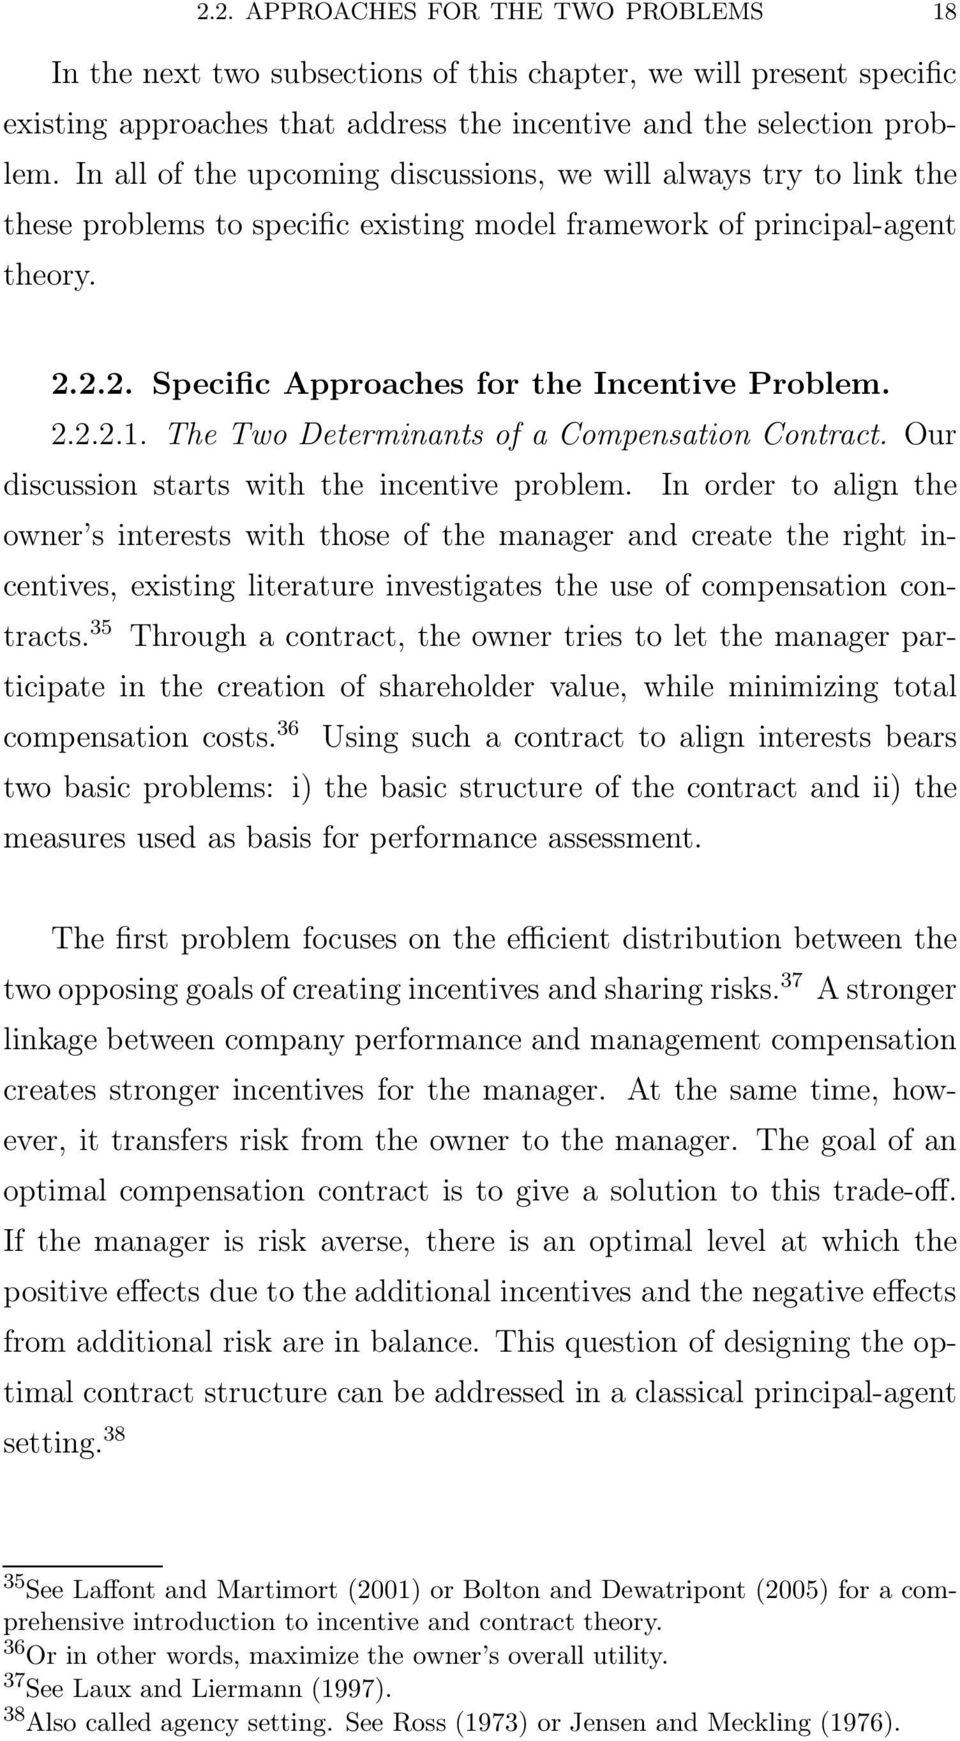 2.2.2.1. The Two Determinants of a Compensation Contract. Our discussion starts with the incentive problem.